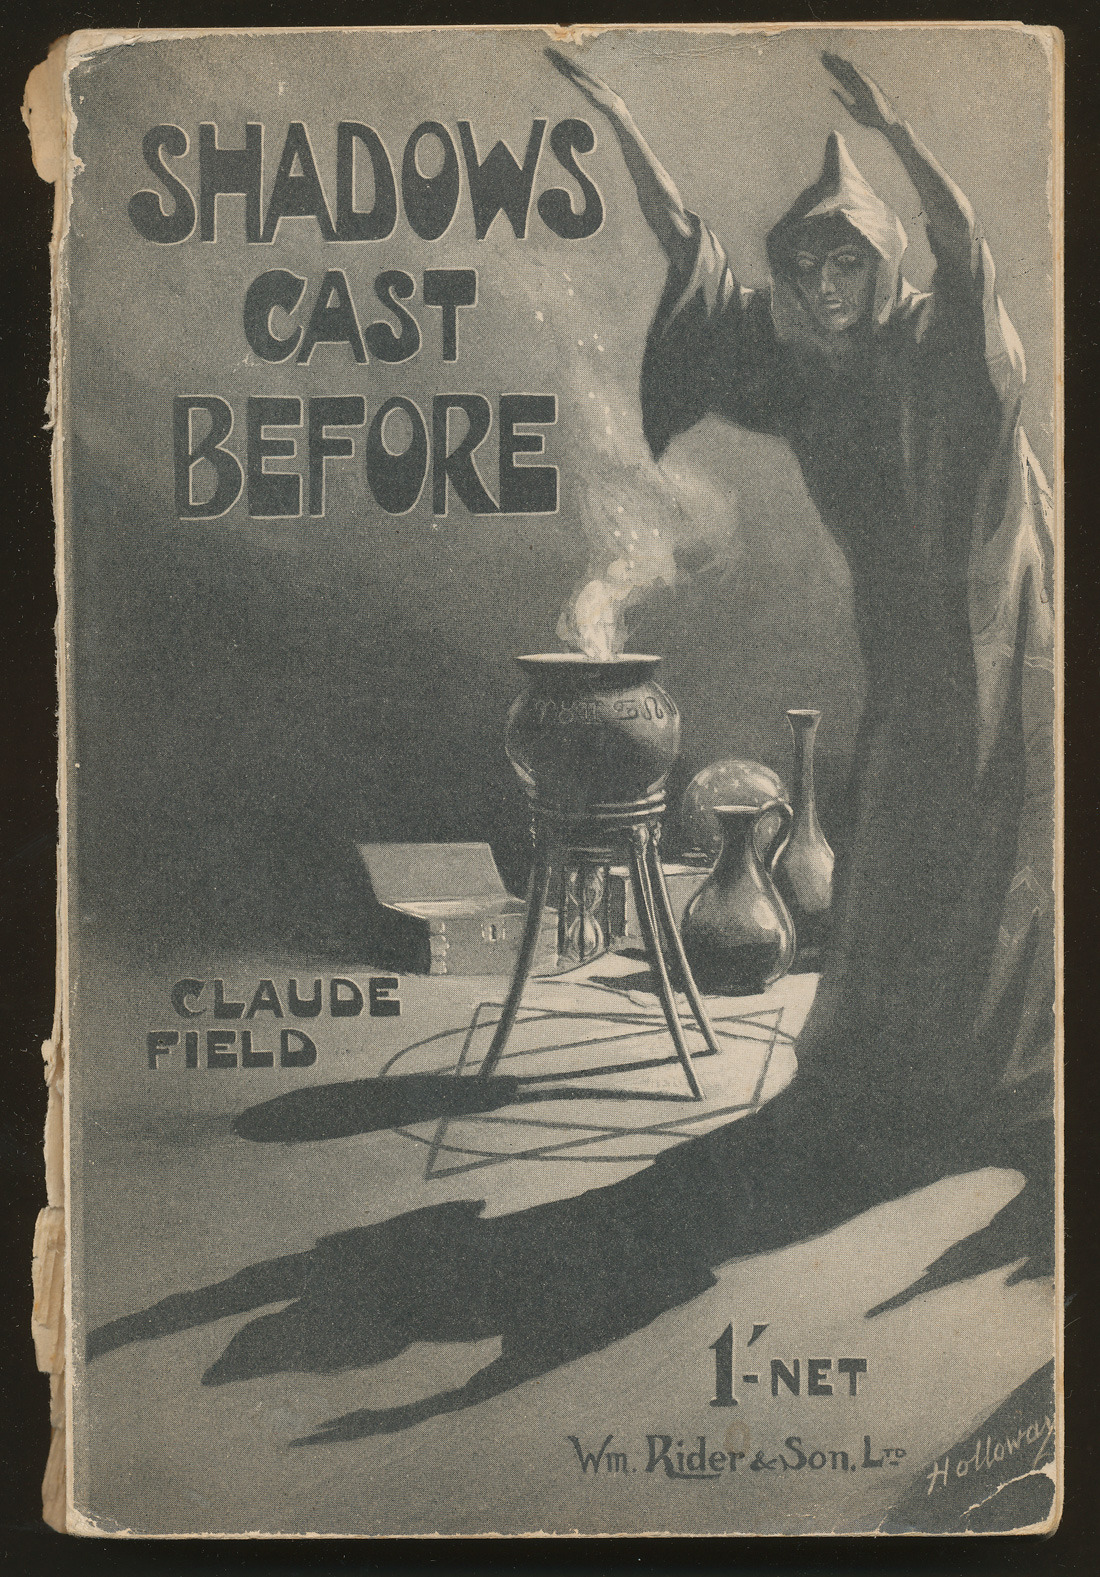 """Shadows Cast Before"" by Claude Field. Published by Wm. Rider, 1940"